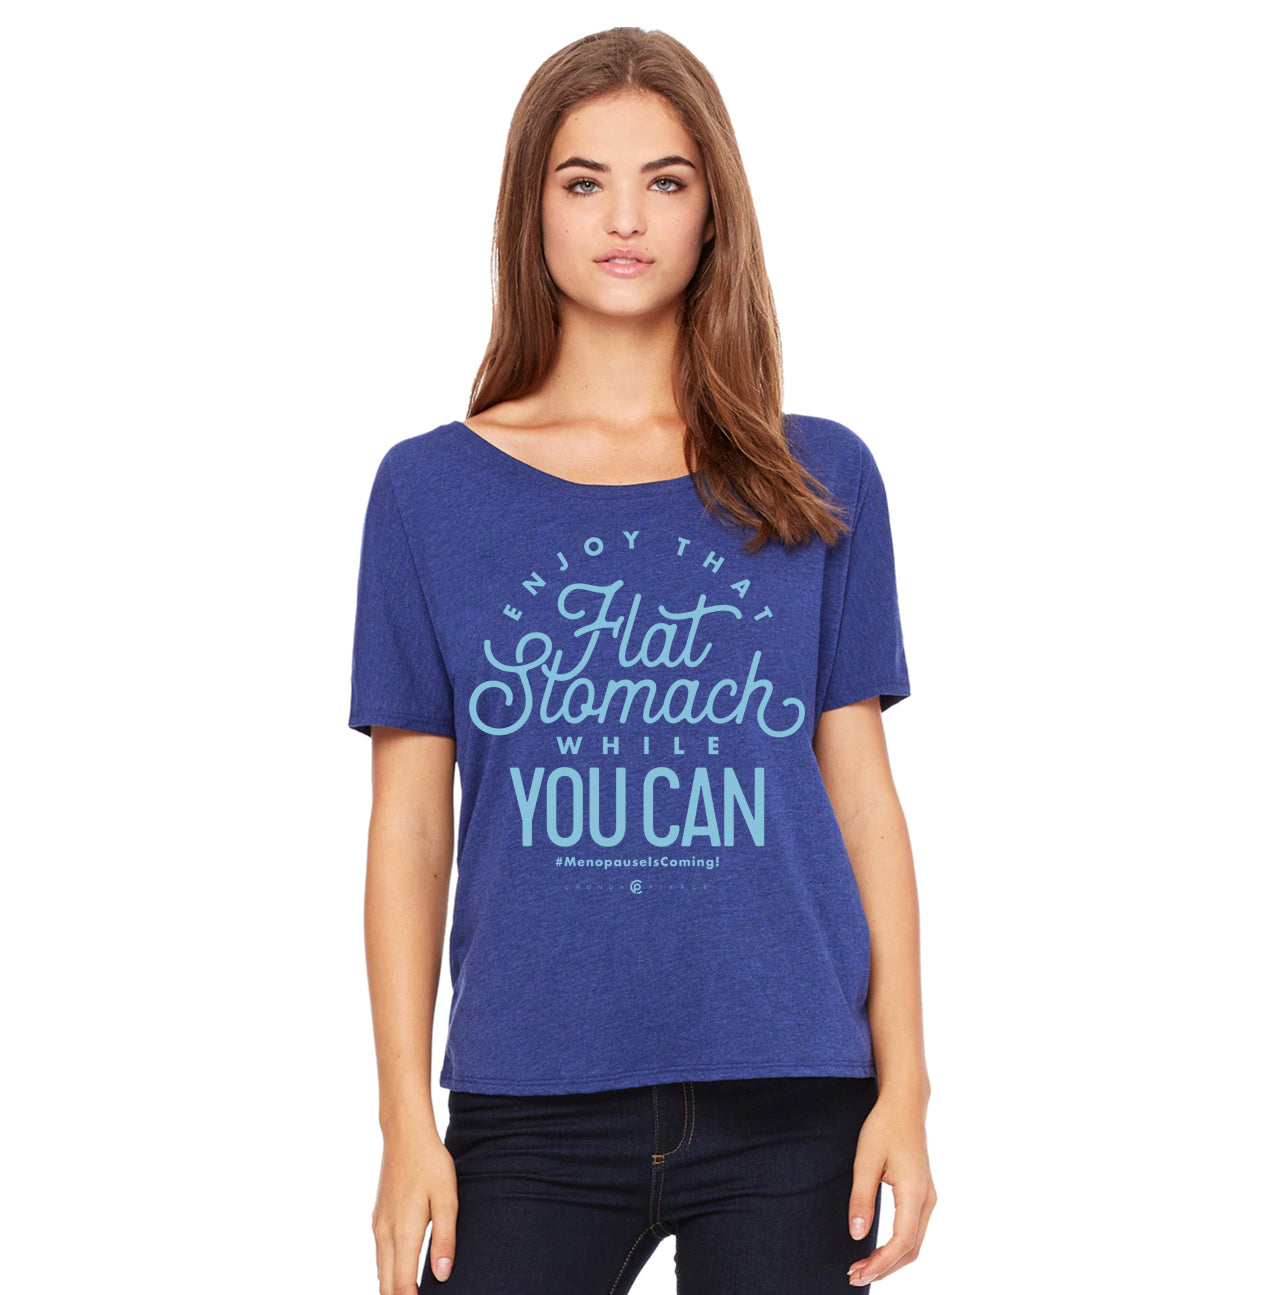 Flat Stomach Tee Chonda Pierce